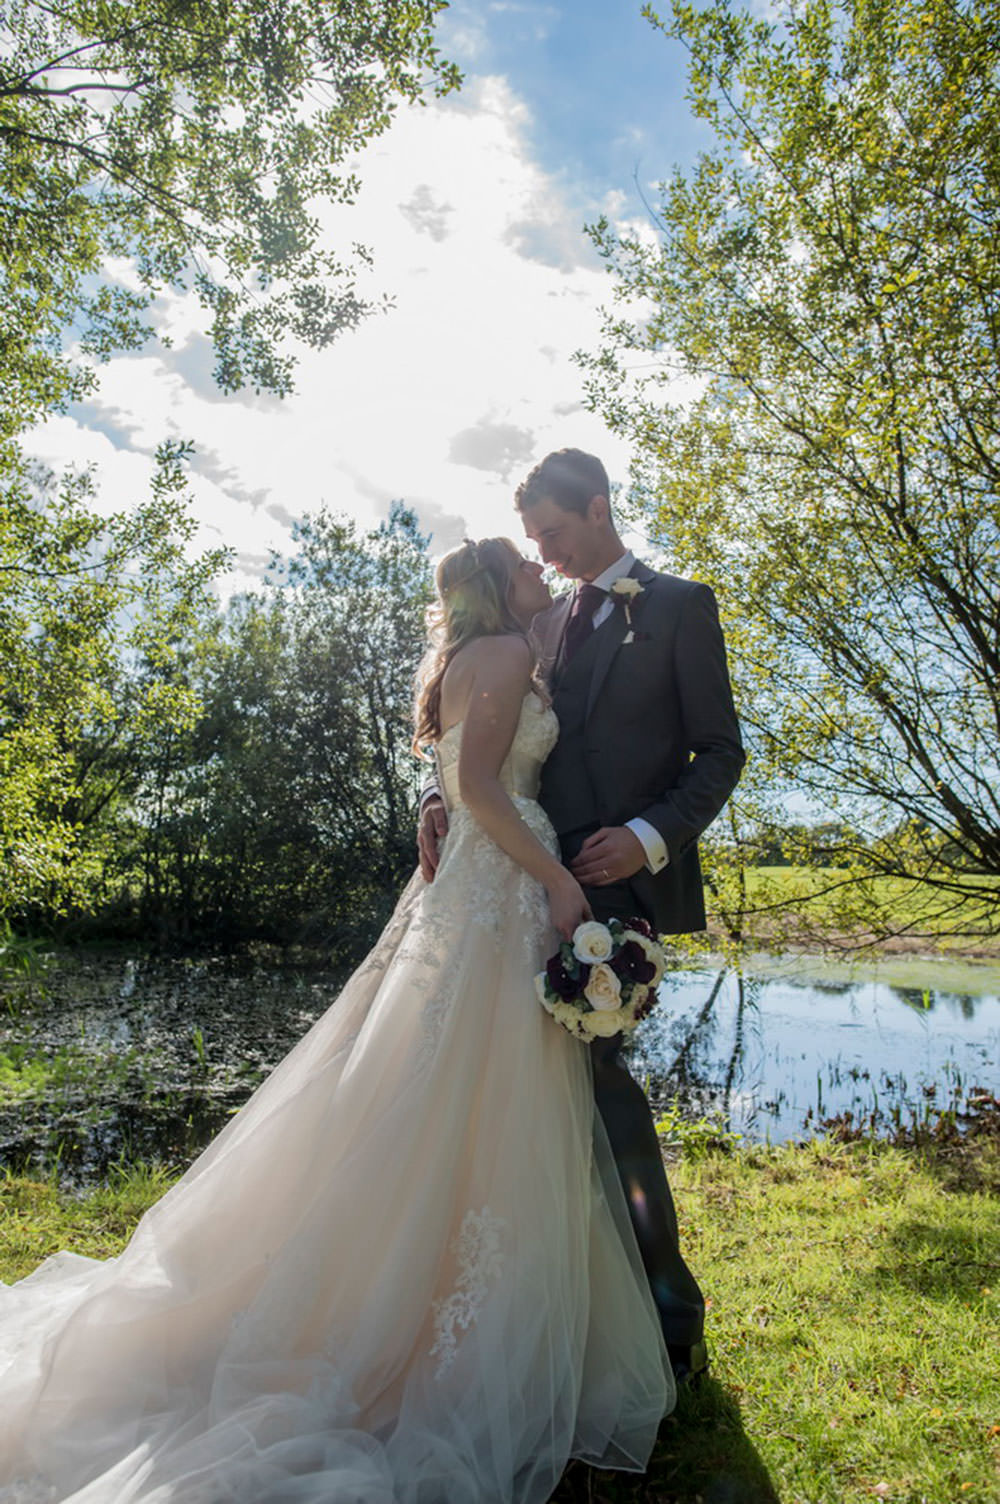 ali-gaudion-wedding-photographer-chichester-skylark-golf-country-club-hampshire-016